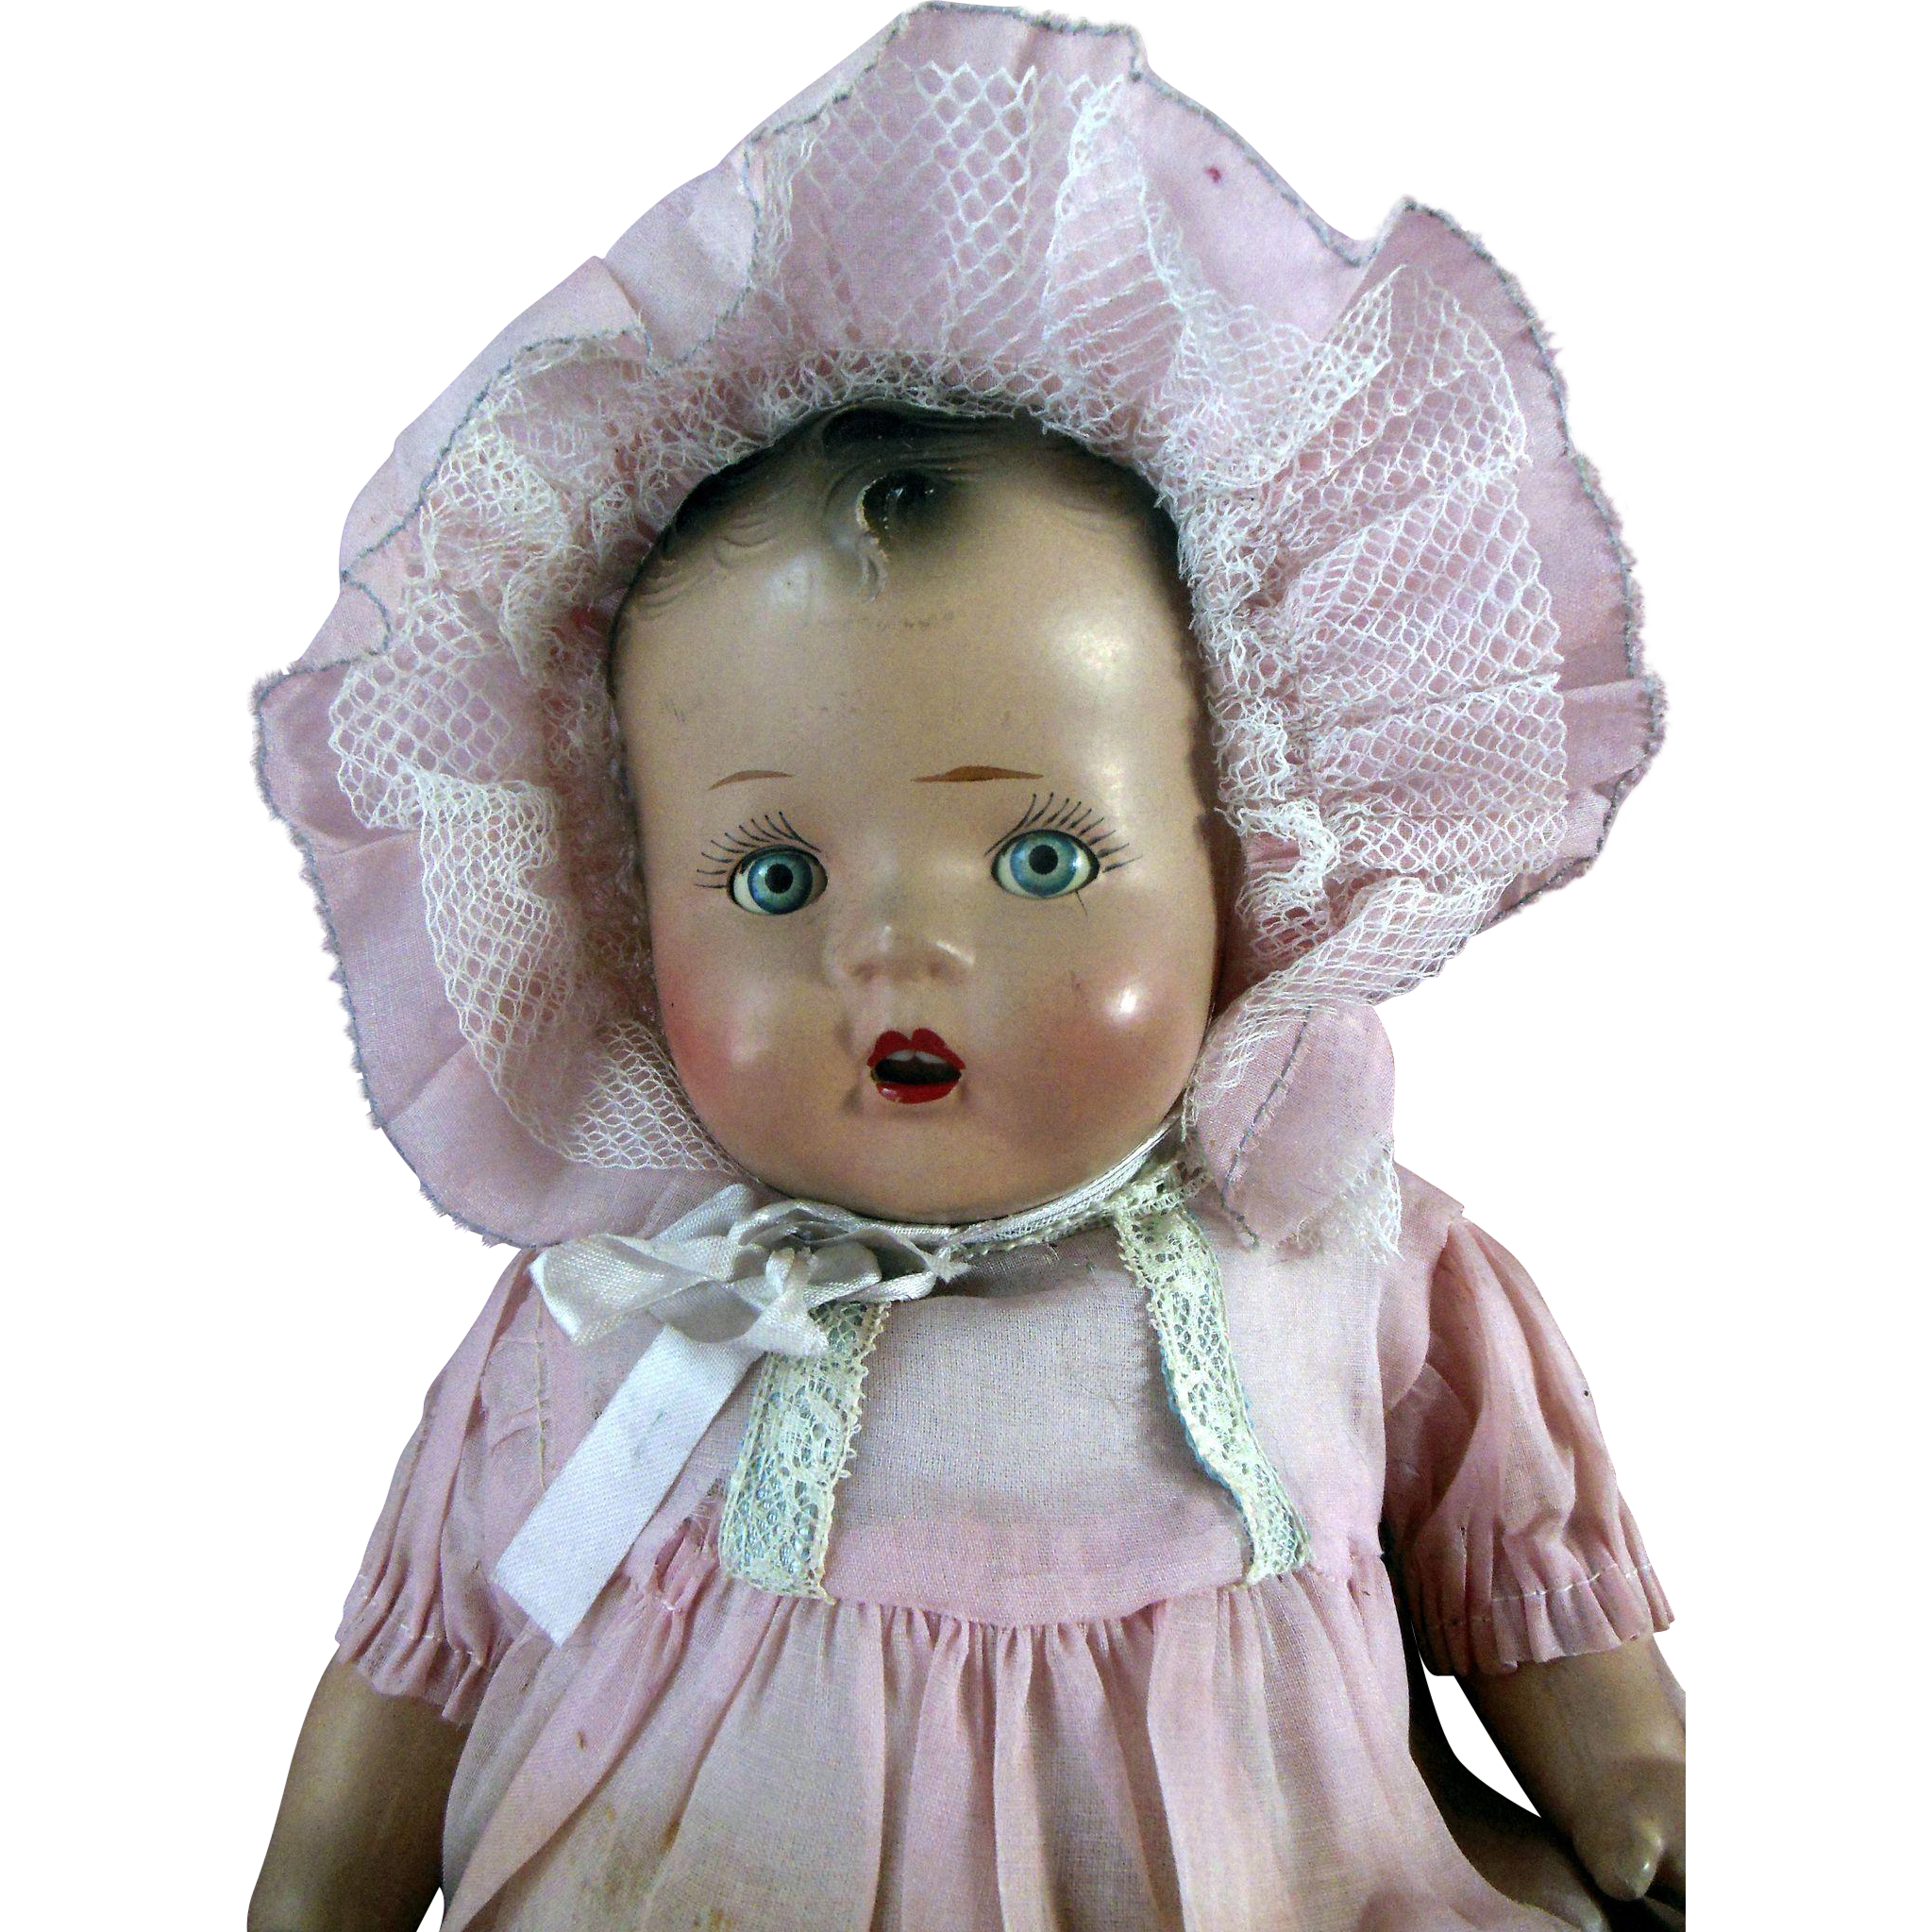 Antique Composition Baby Doll In Crisp Original Clothes Rosy Cheeks From Valeriezakantiquescollectables On Ruby Lane Baby Dolls Vintage Dolls Original Clothes